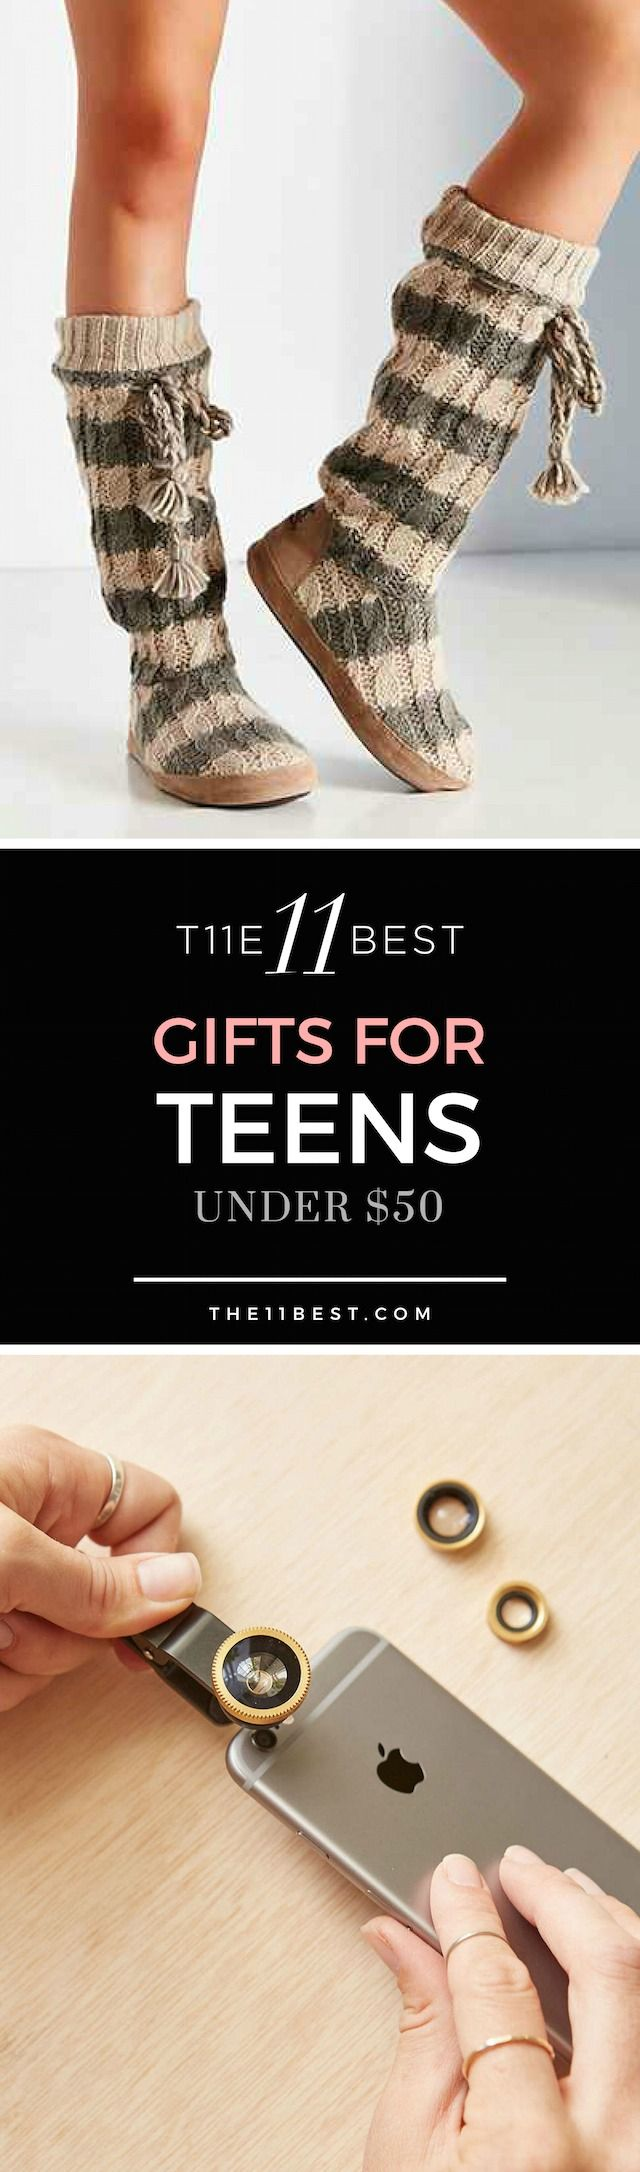 the 11 best gifts for teens under 50 - Best Christmas Gifts Under 50